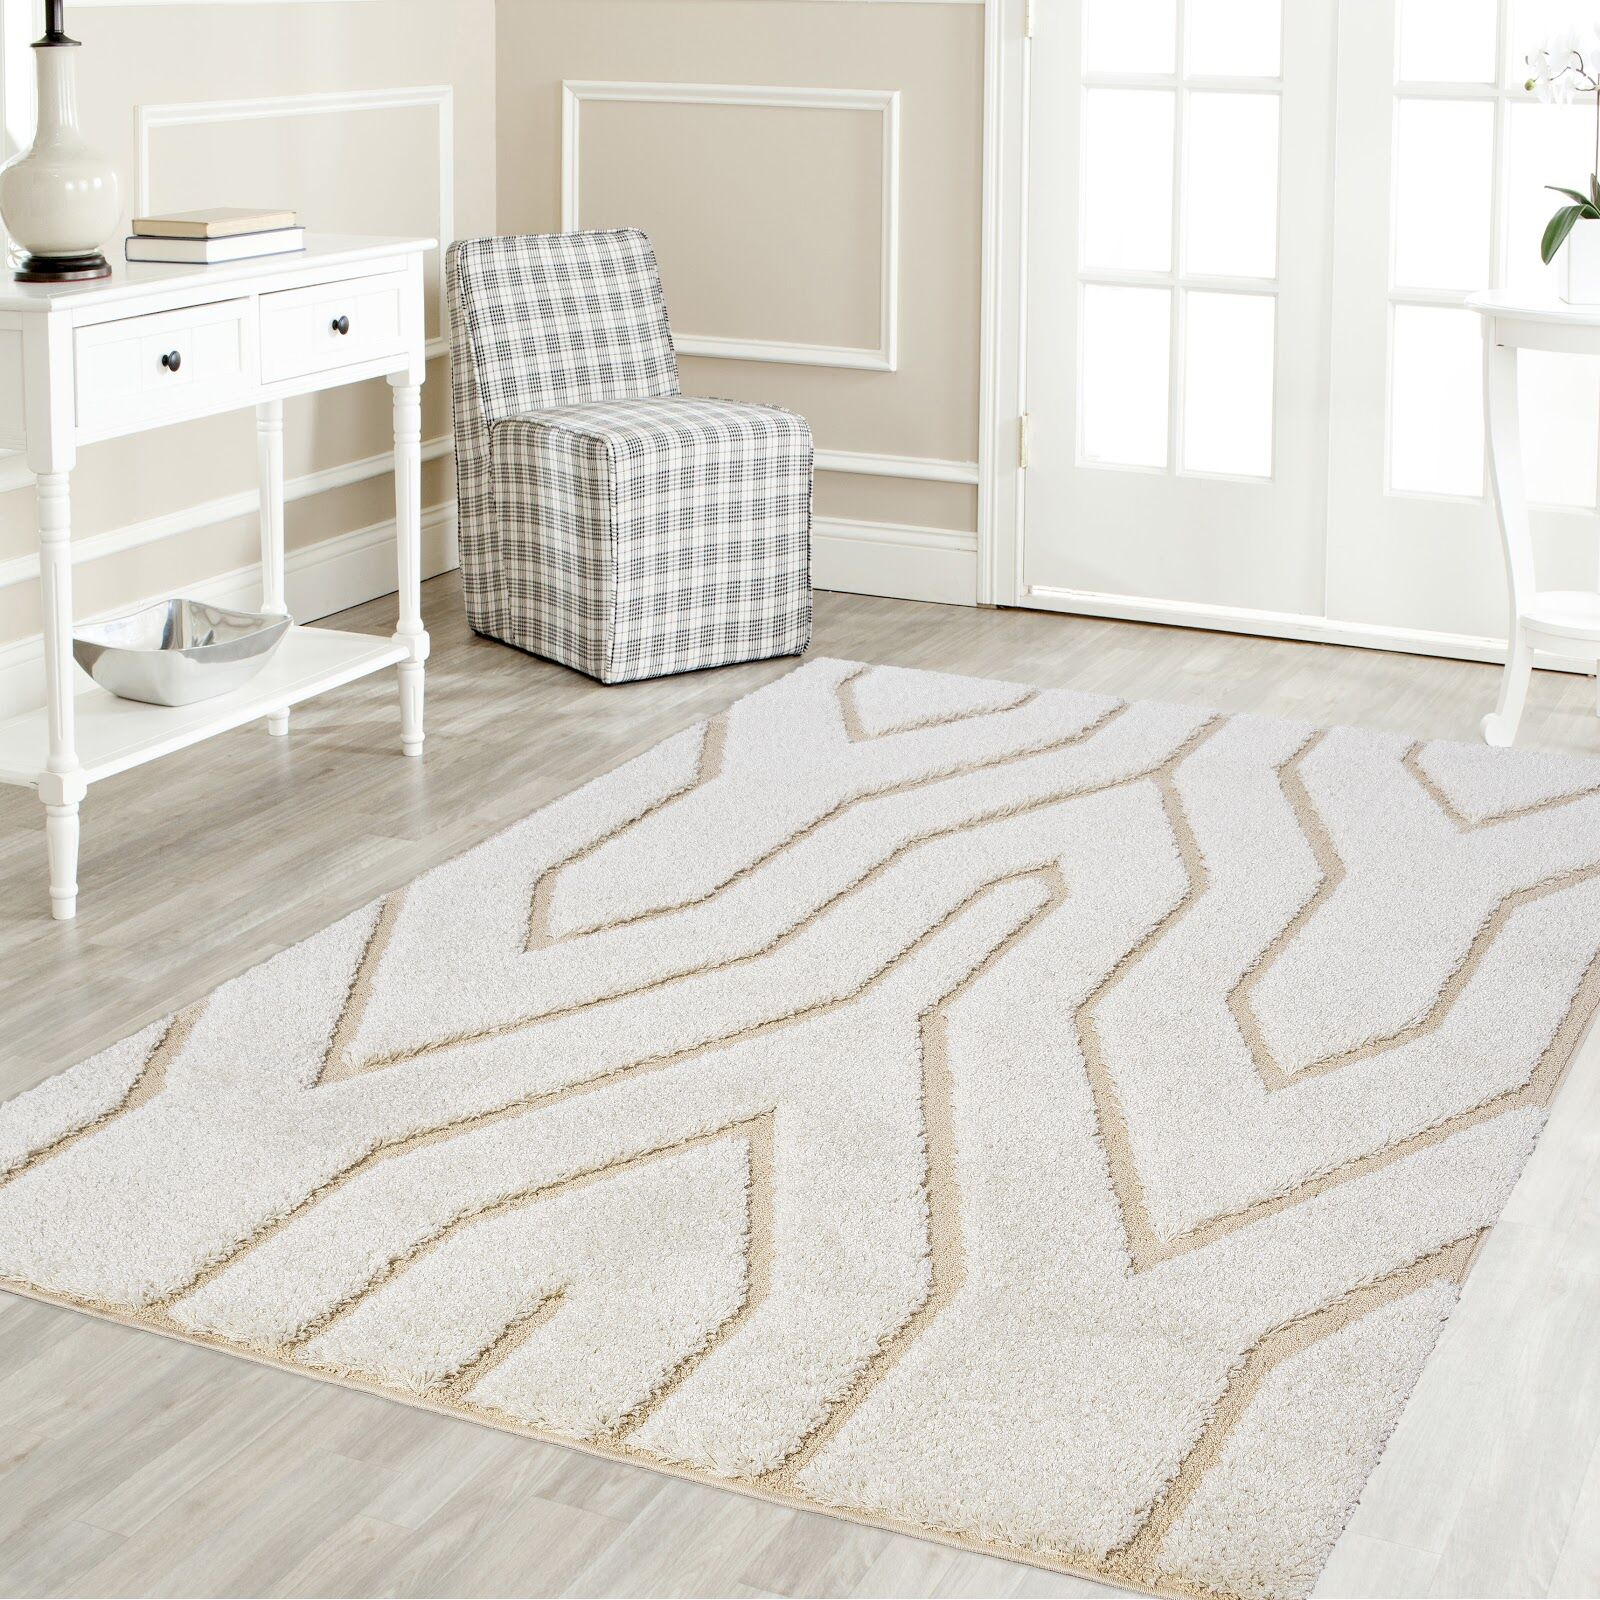 Ruiz Glam Shag White/Beige Area Rug Rug Size: Rectangle 8' x 10'